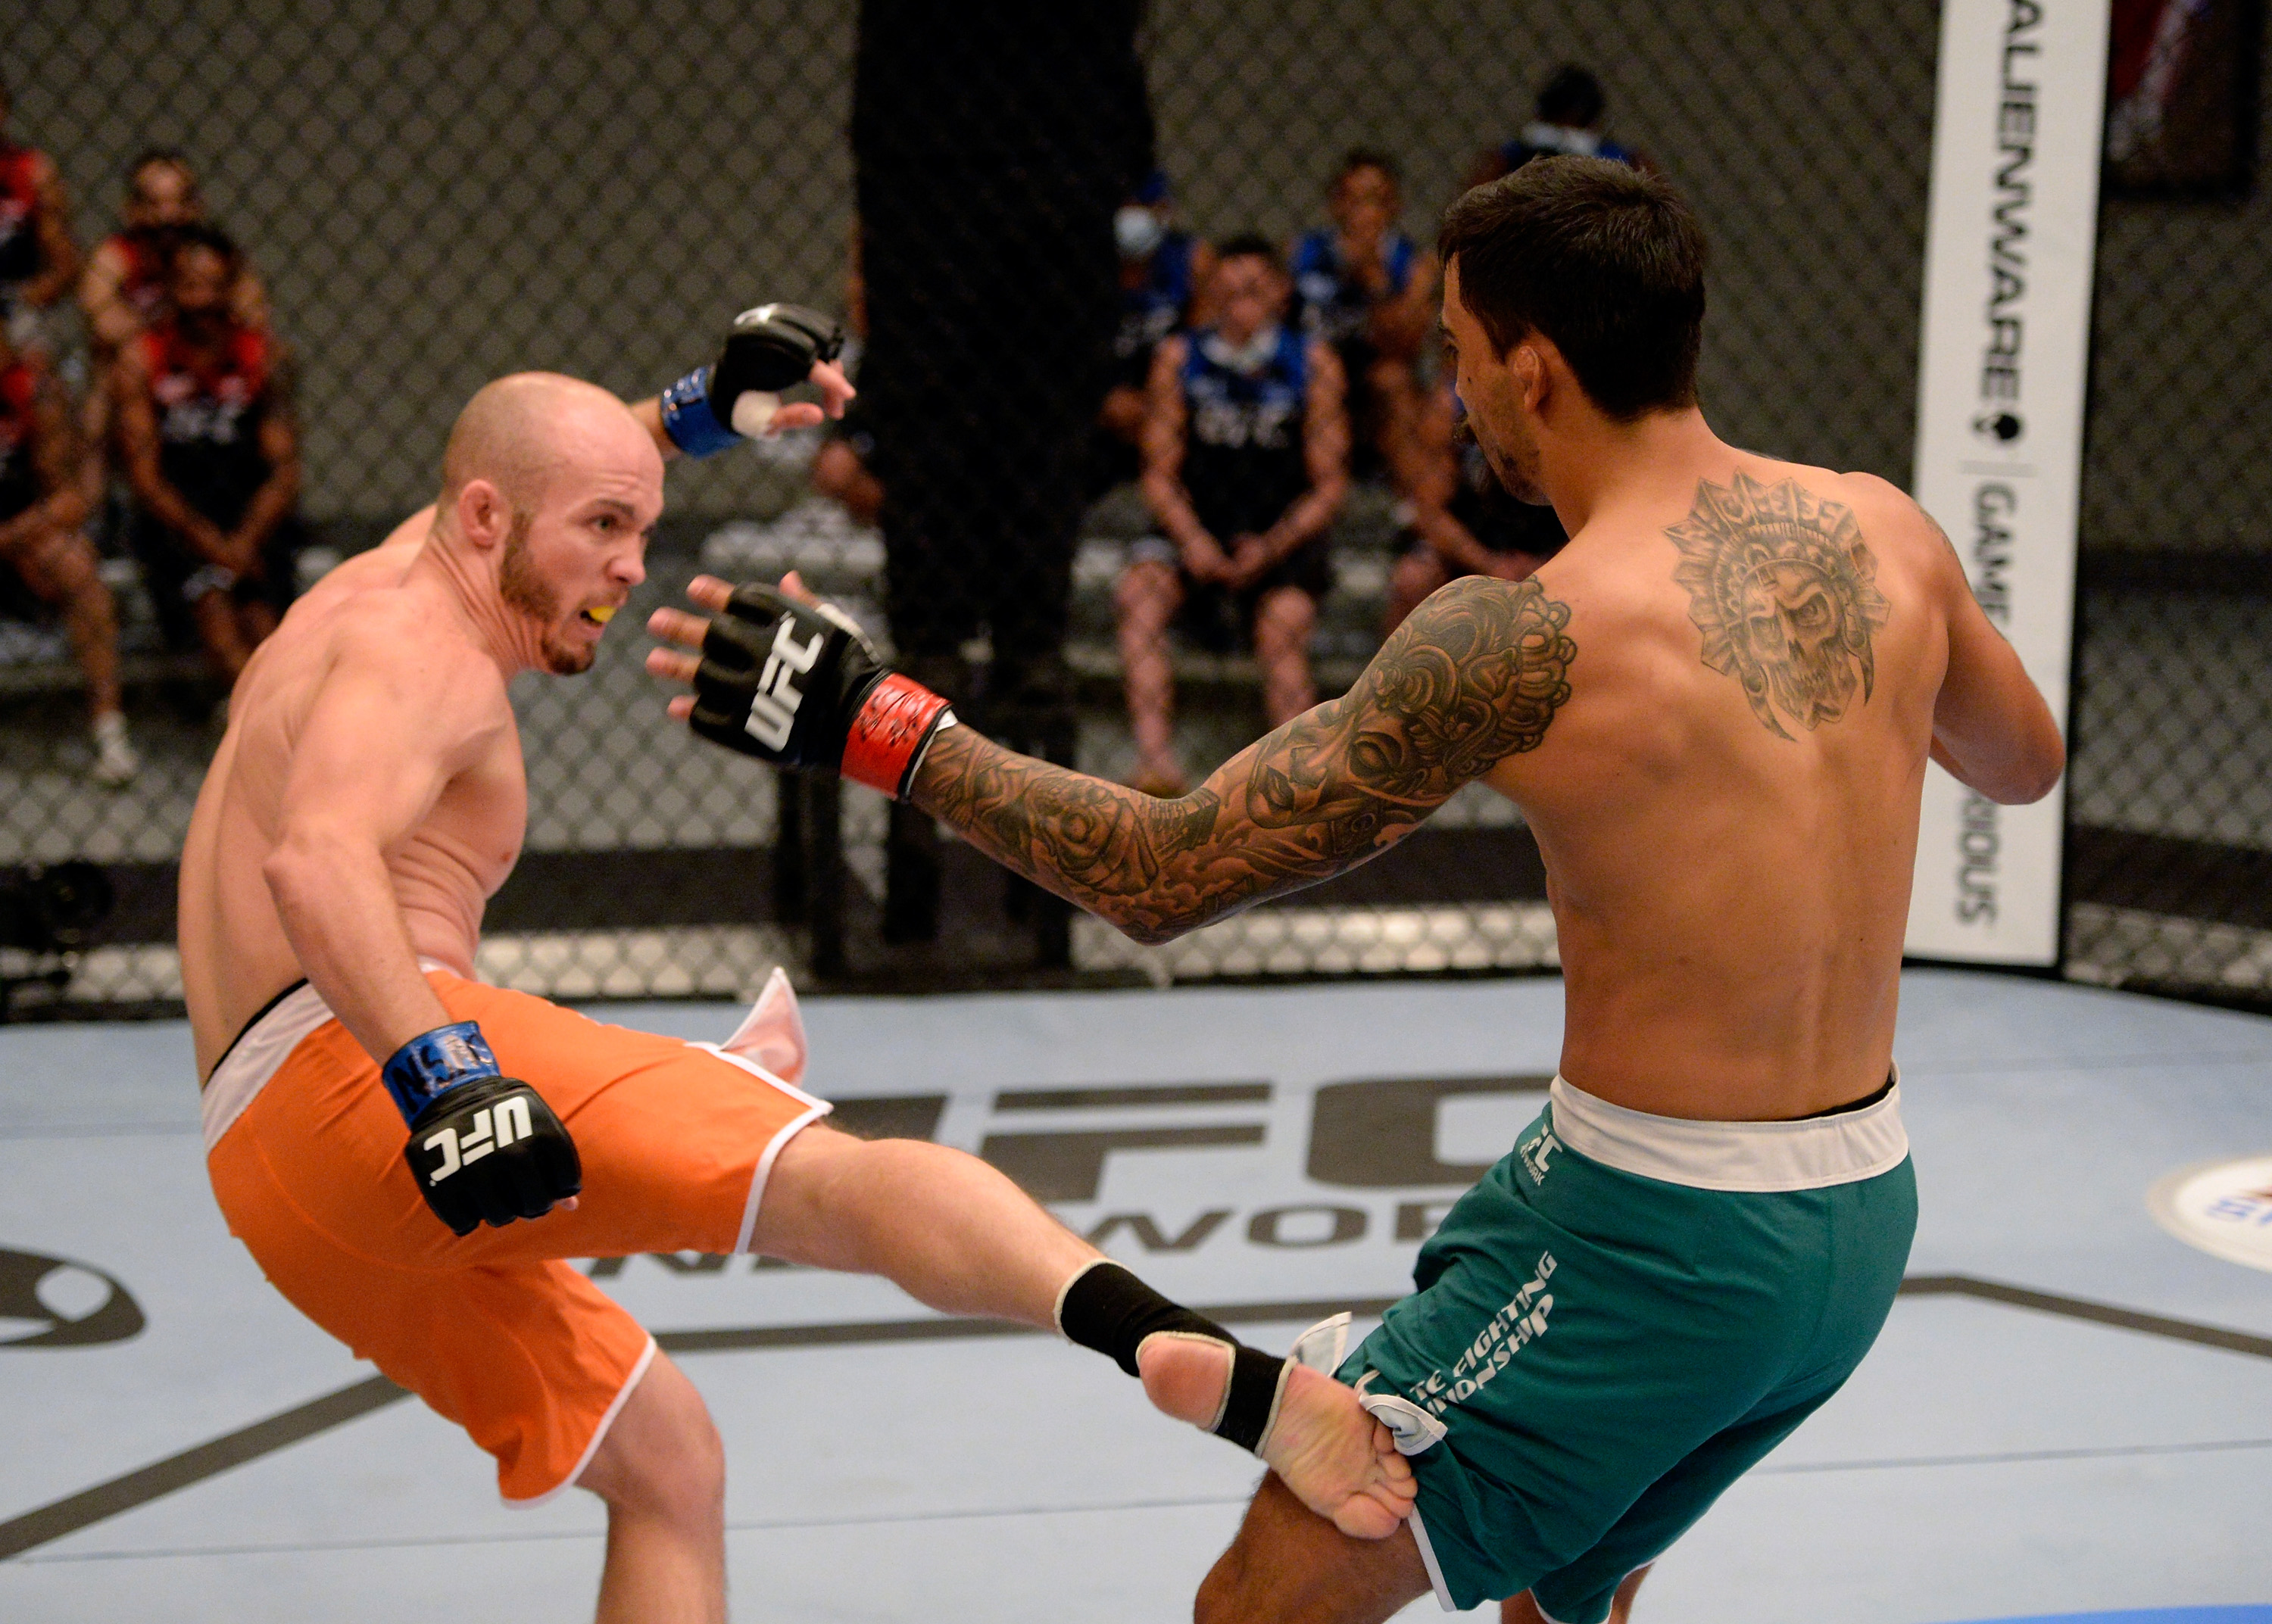 The Ultimate Fighter Latin America - Quionez v Syler